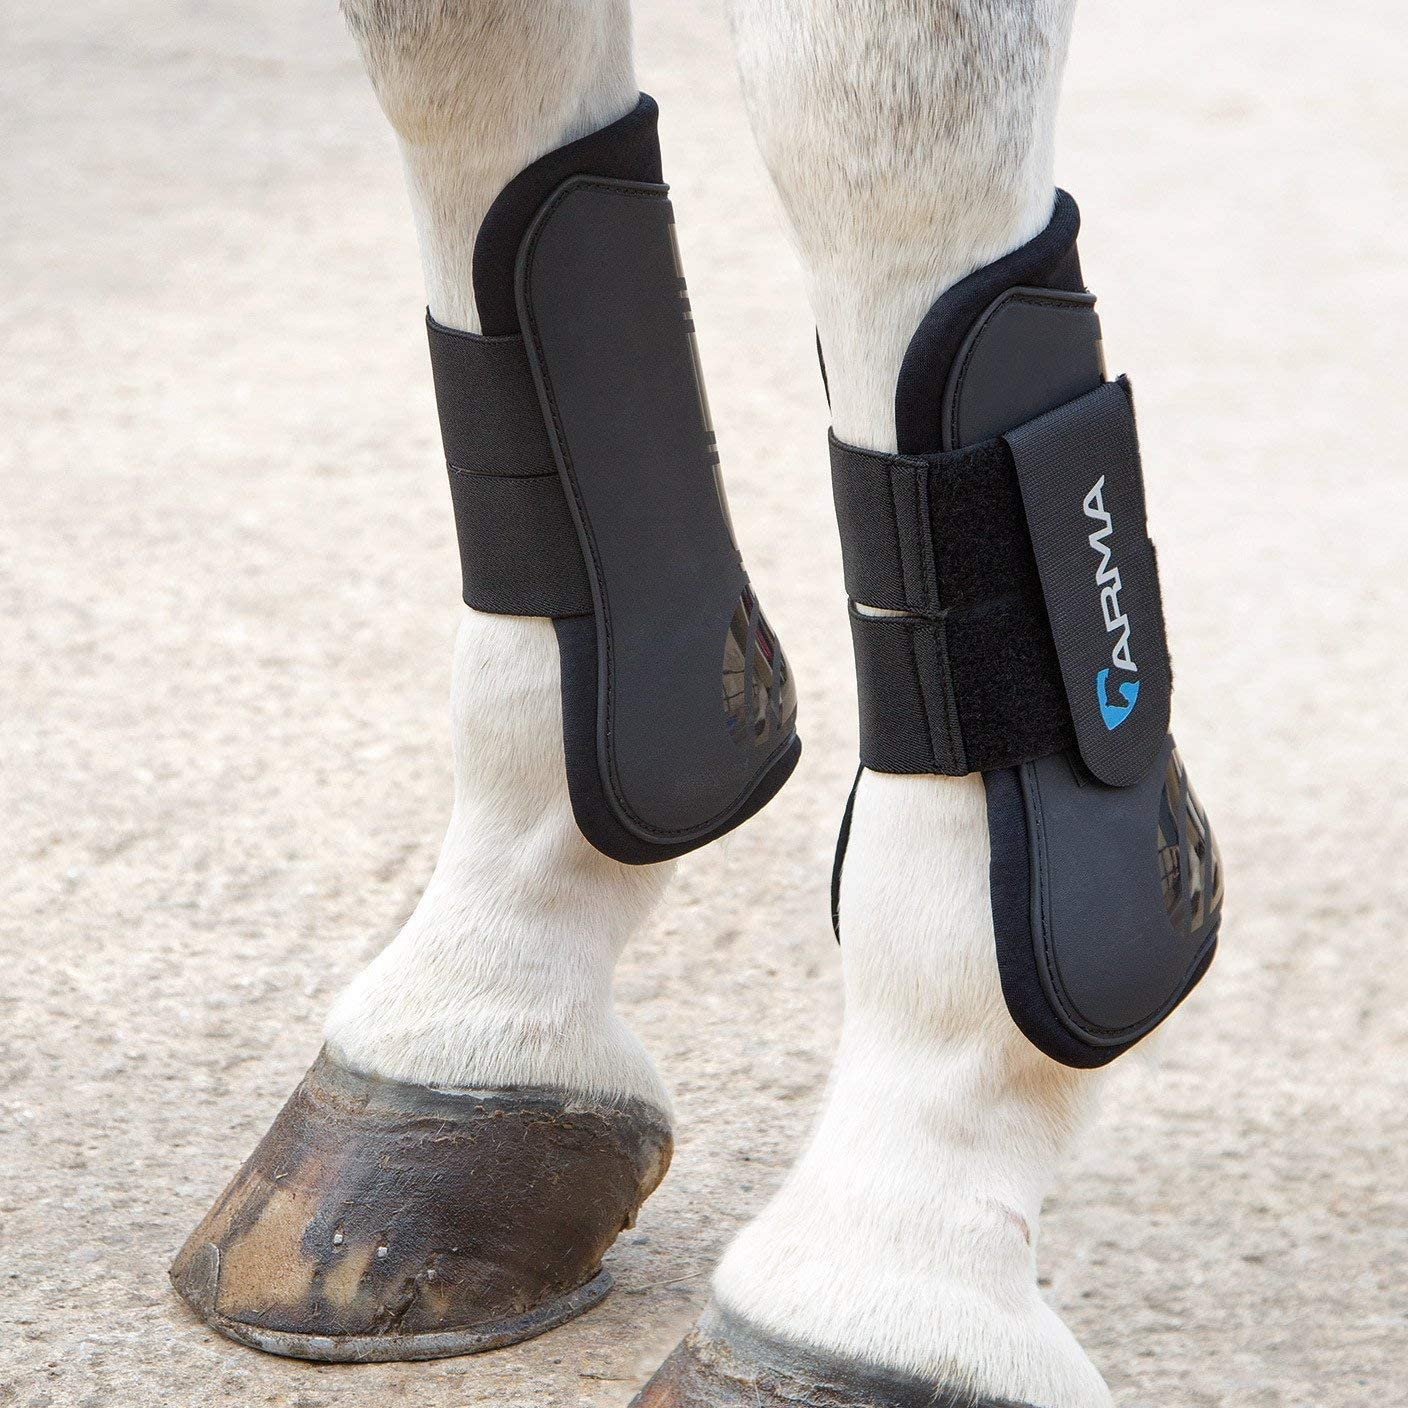 Shires Arma Neoprene Brushing Boots in Royal Blue